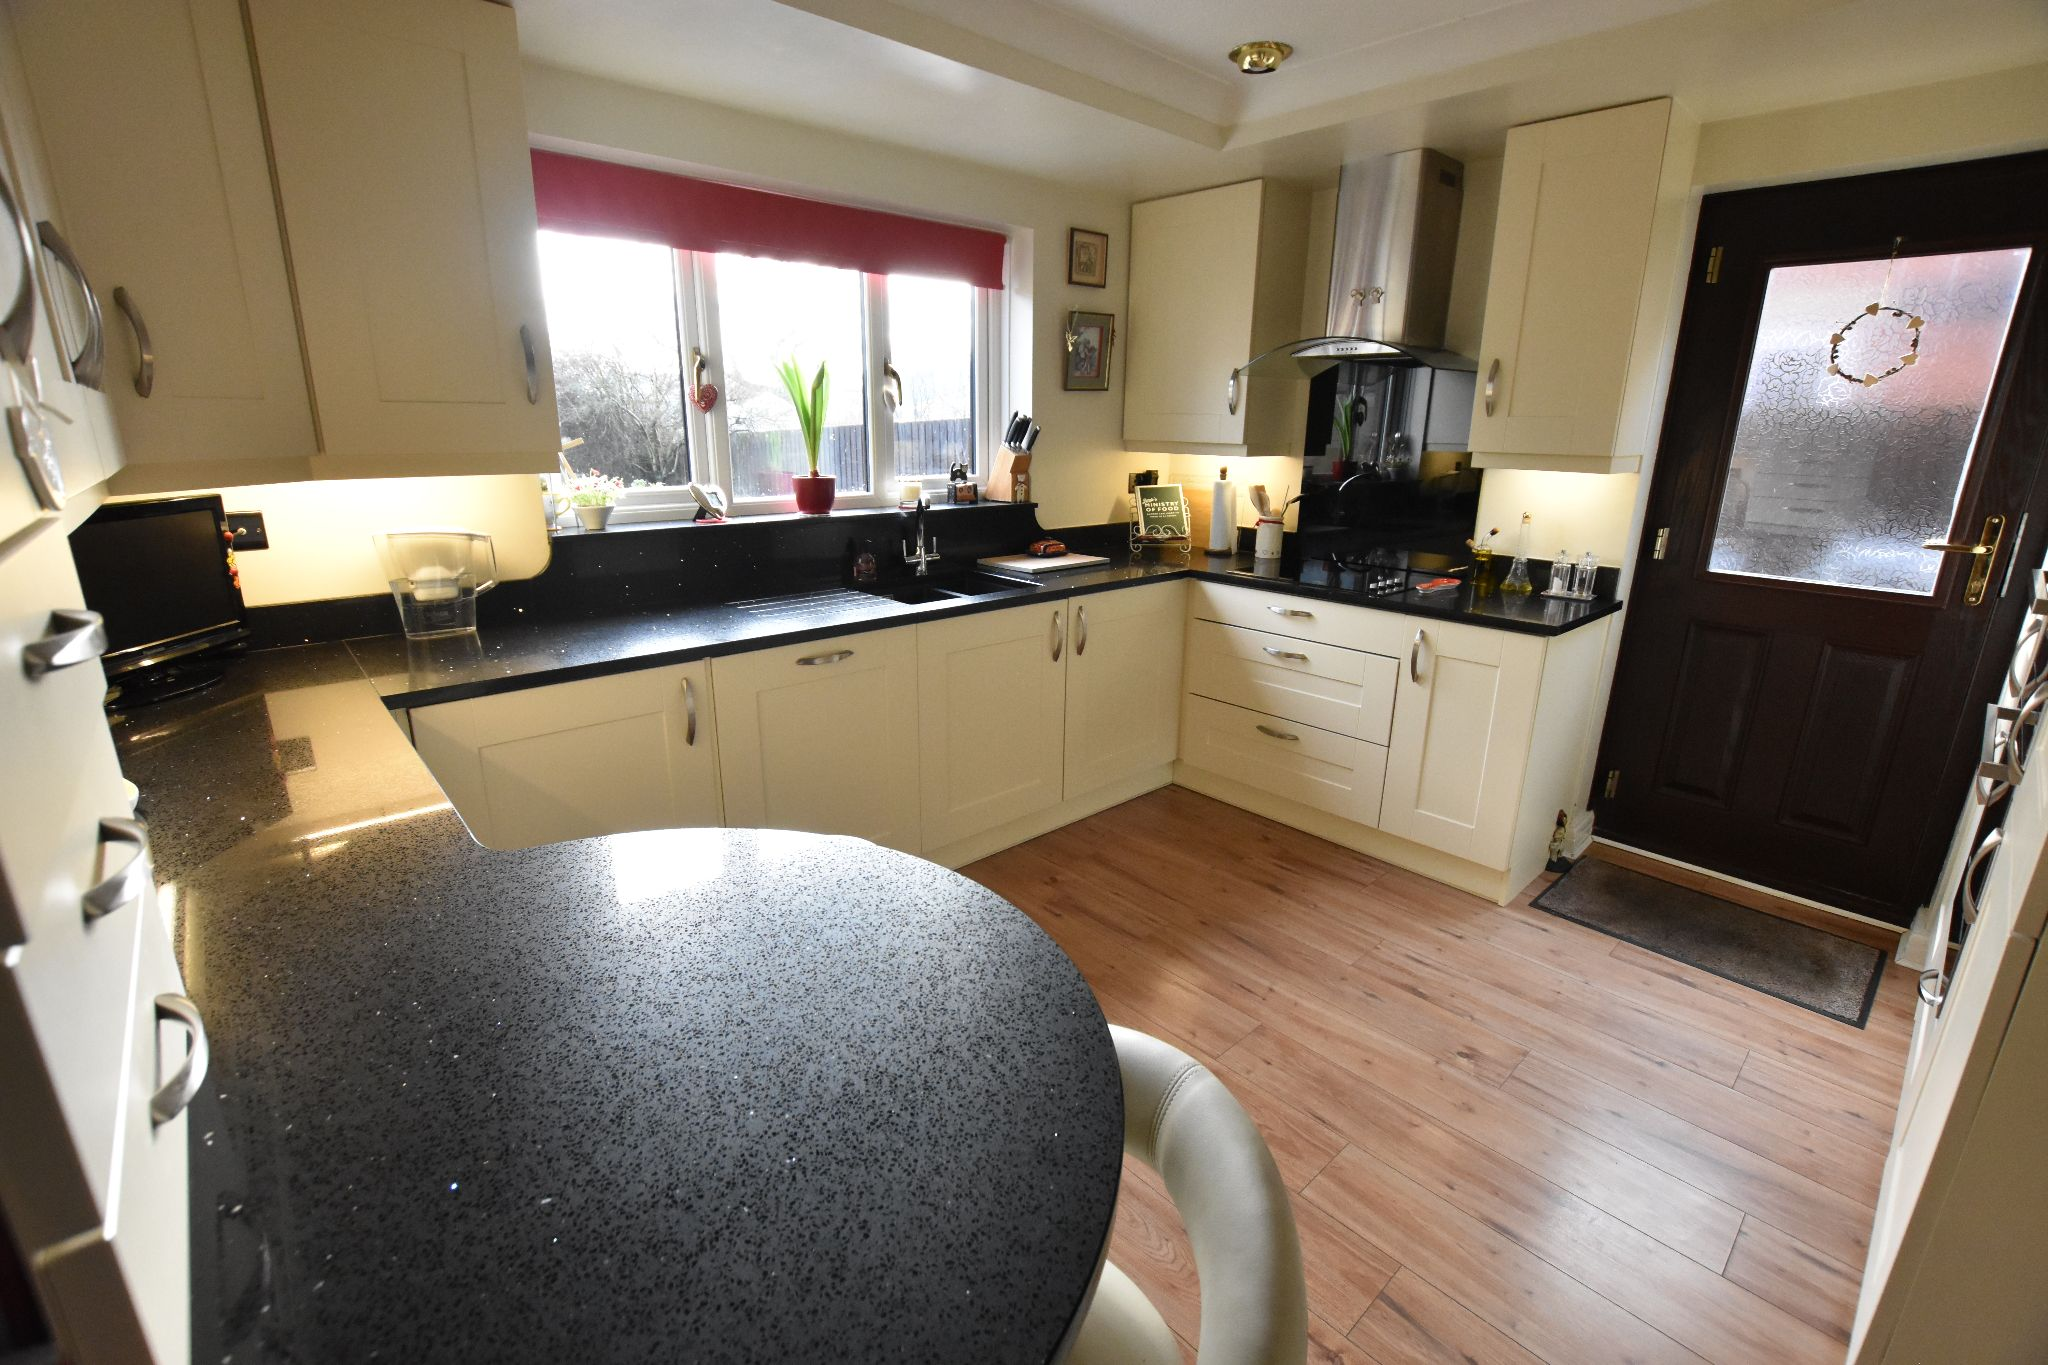 4 bedroom detached house Sold STC in Lytham St. Annes - Kitchen